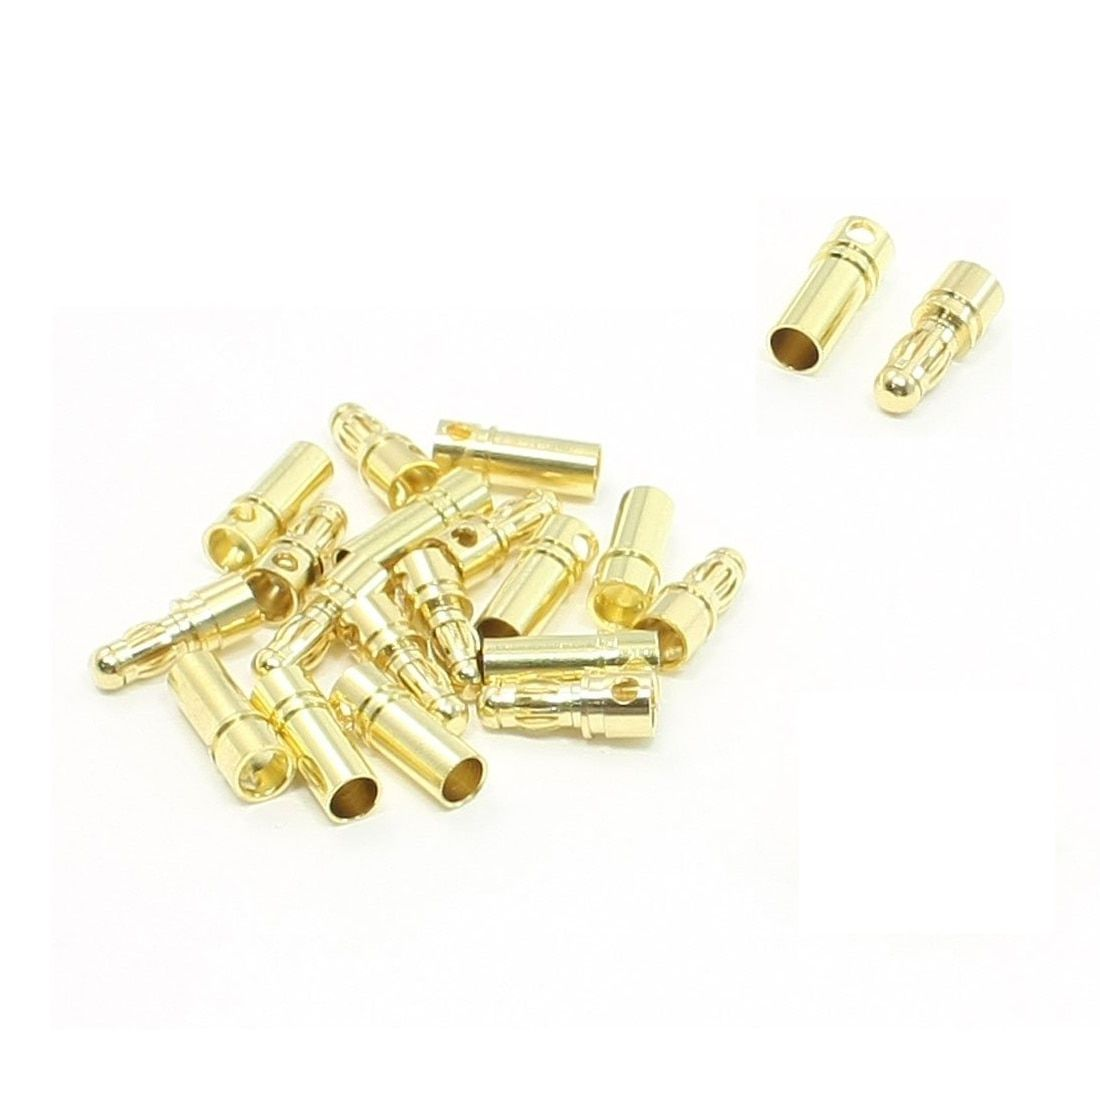 Professional 10 Pairs Gold Tone Metal Banana Bullet Plug Male Female Connector 3.5mm